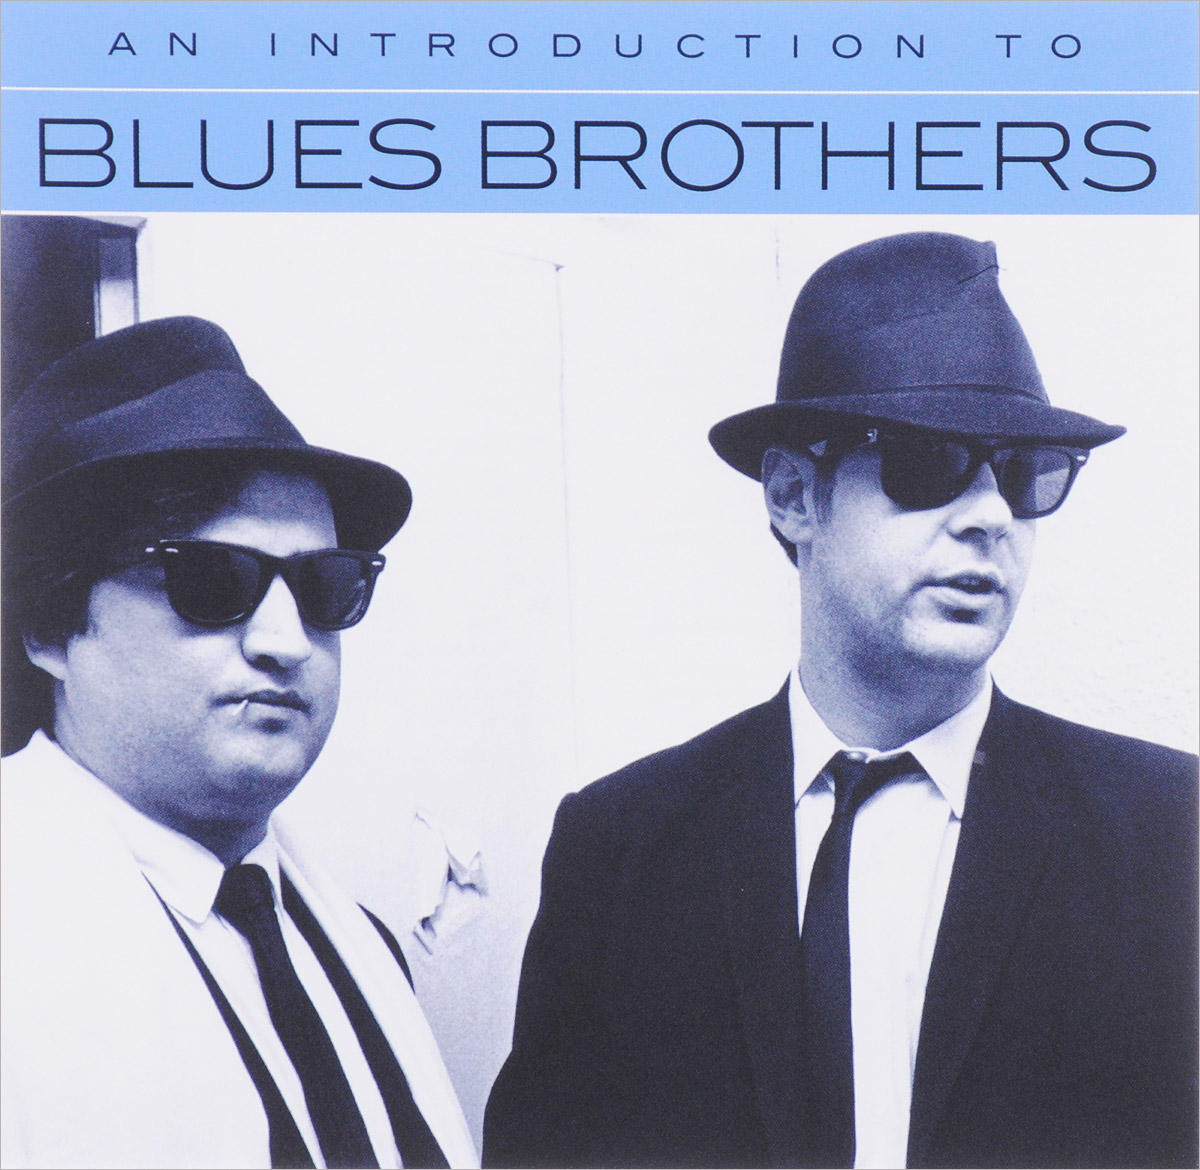 The Blues Brothers Band Brothers. An Introduction To